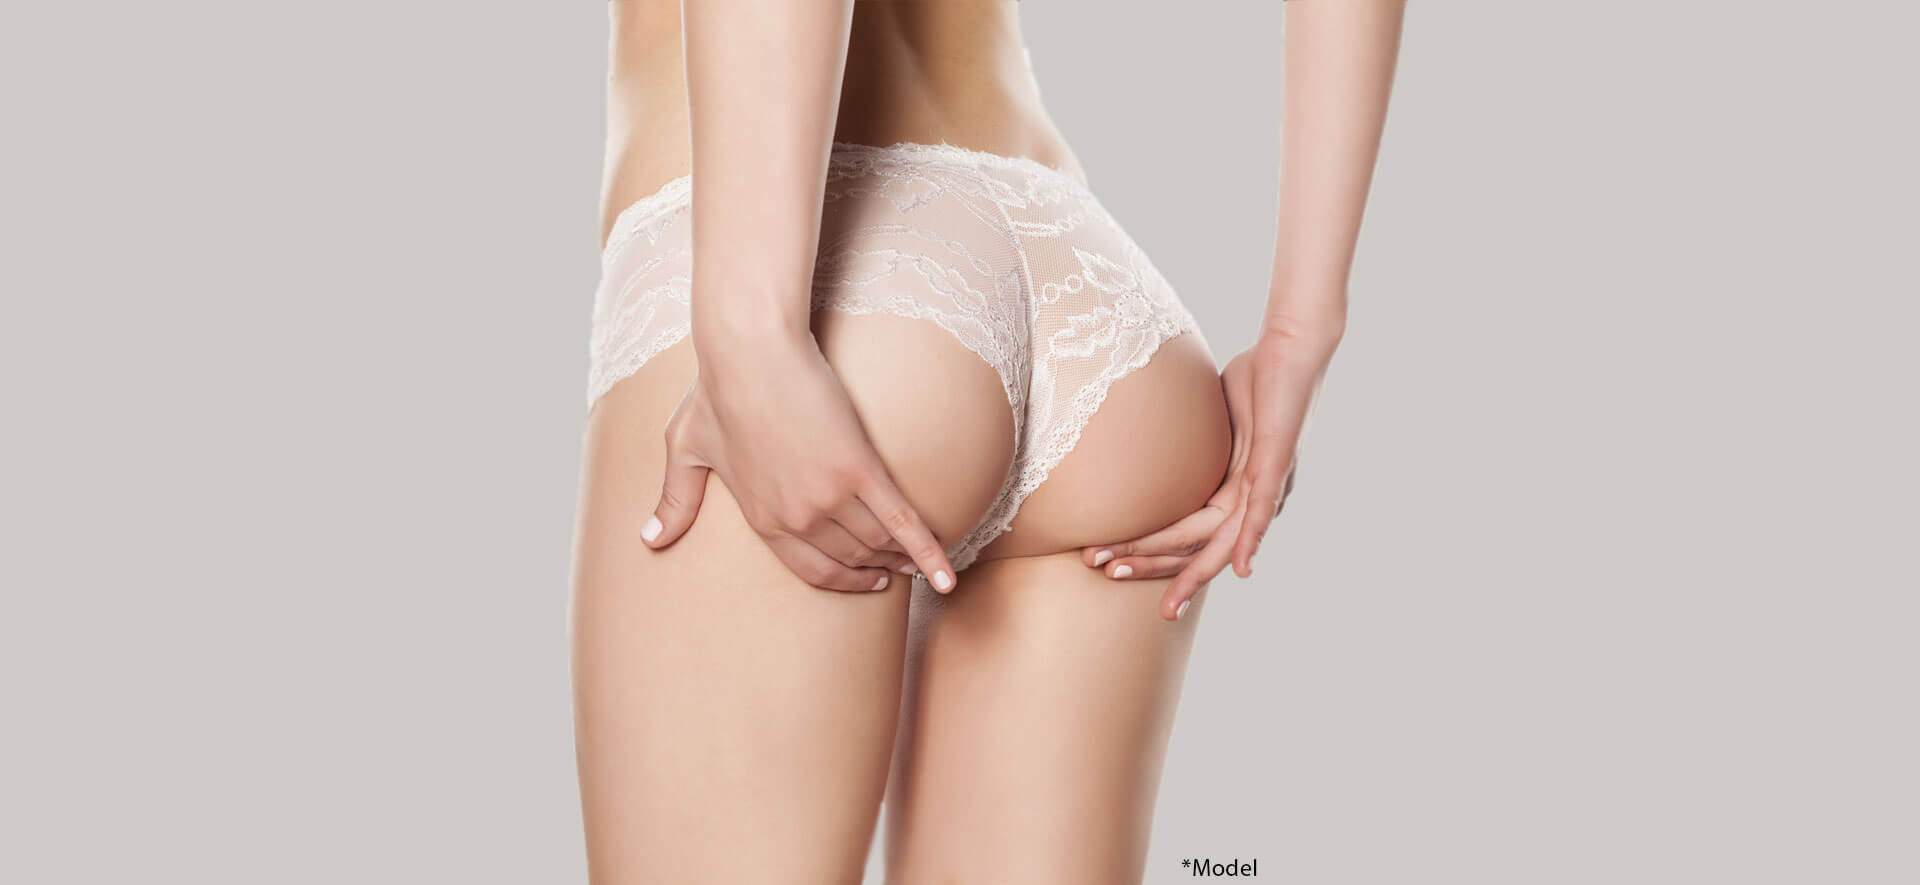 Cropped image of woman in white lingerie lifting her buttocks